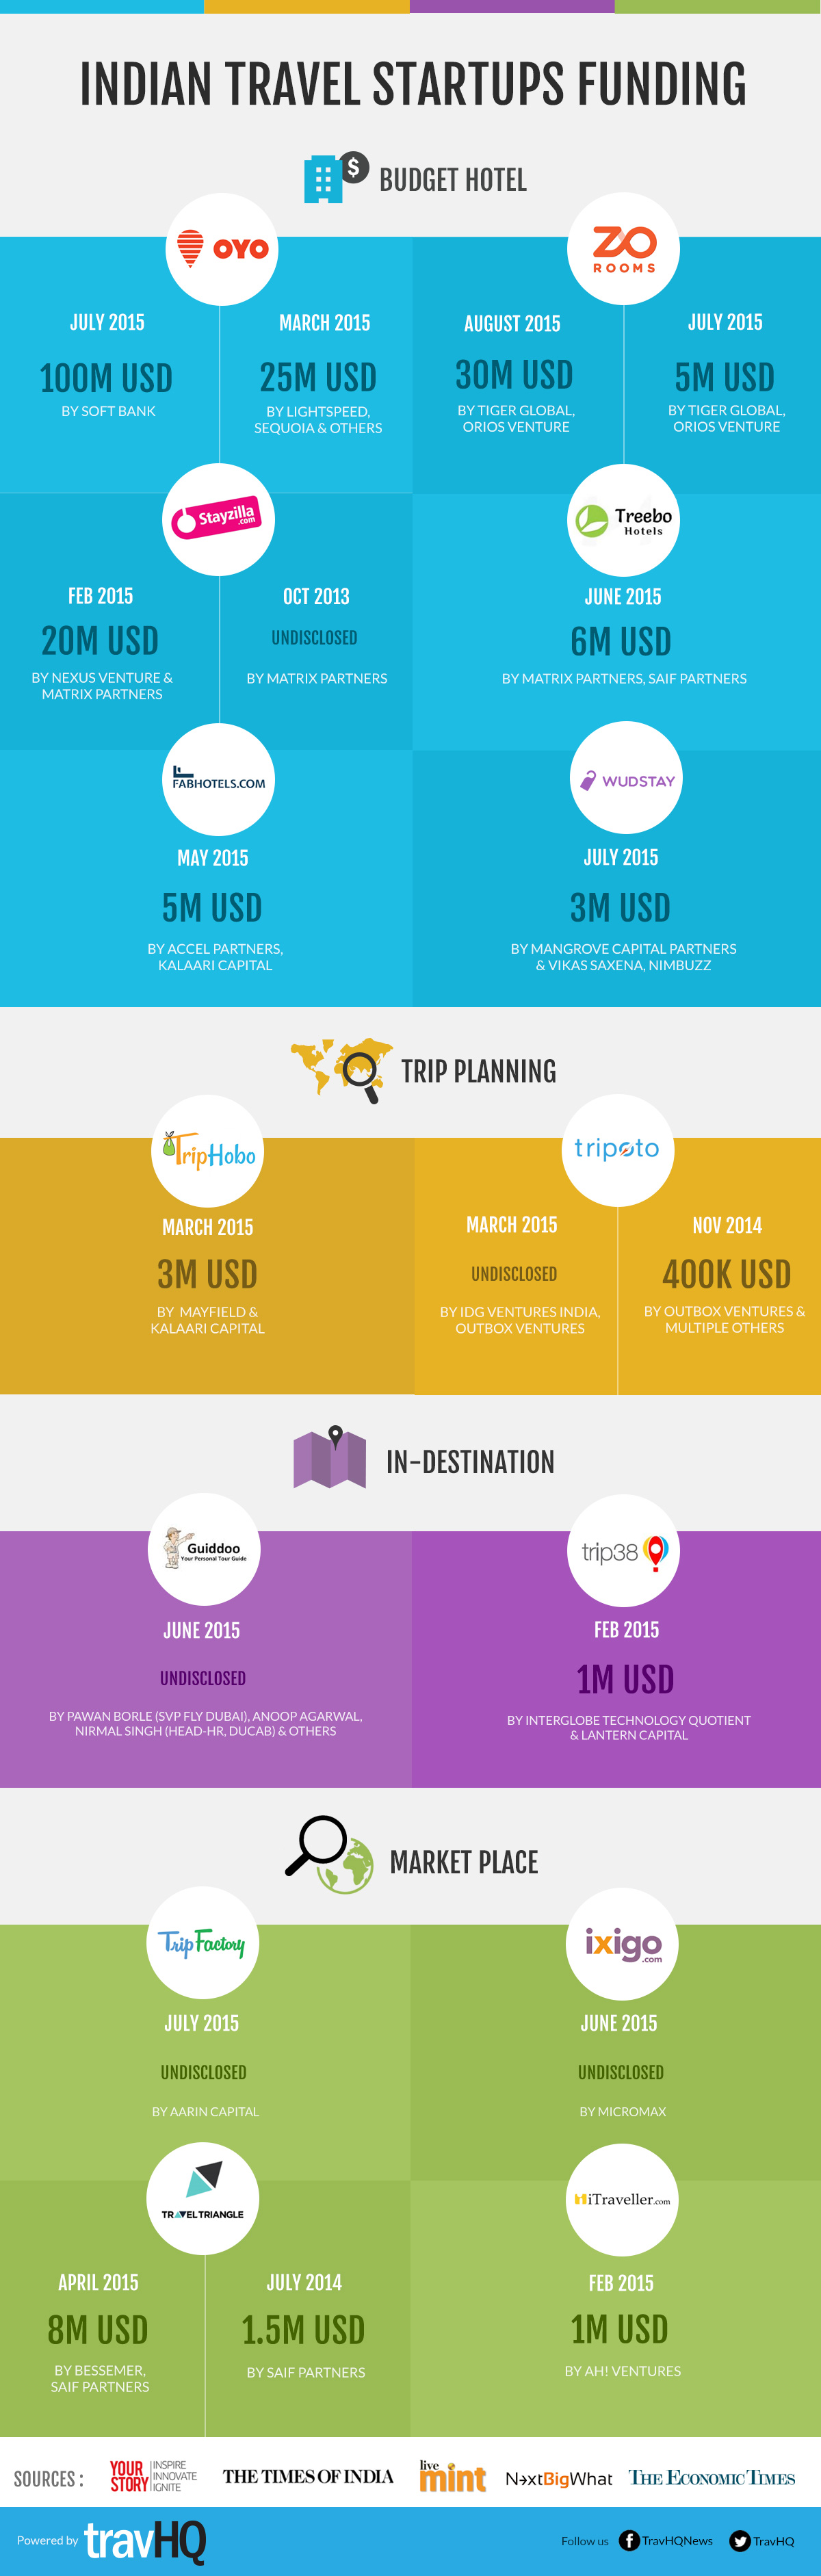 travel startup funding infographic